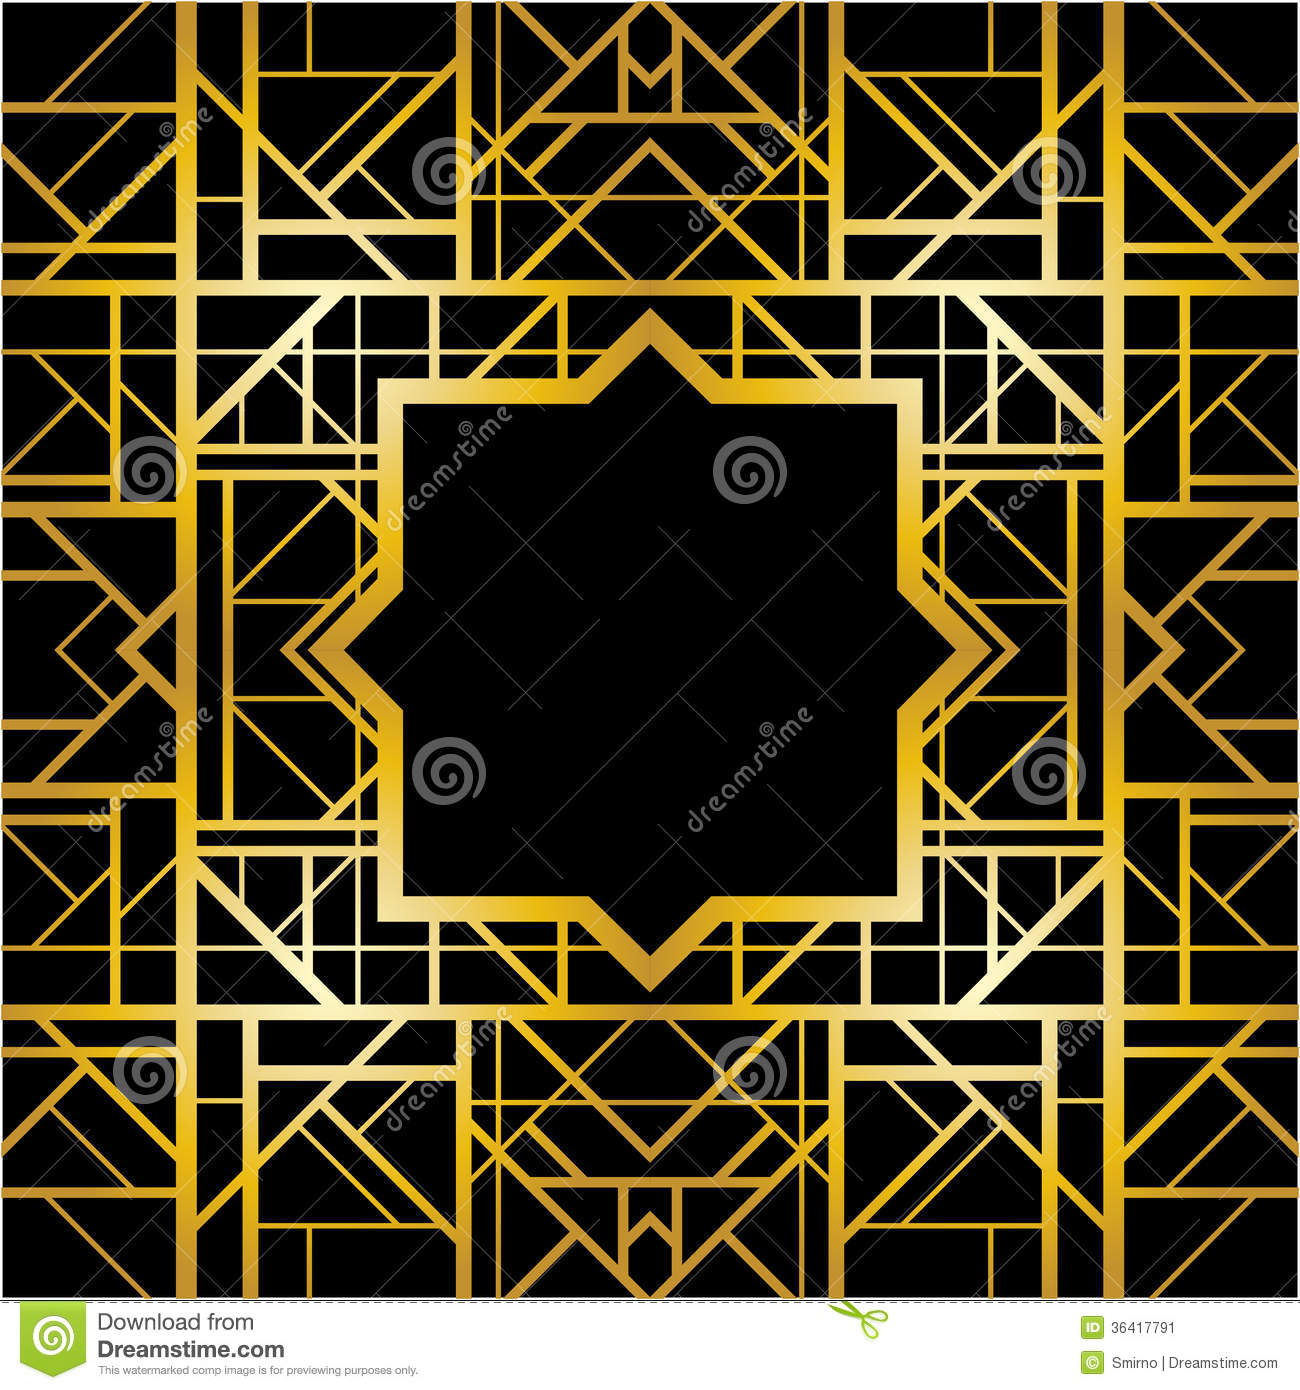 Art Deco Geometric Pattern Stock Image - Image: 36417791